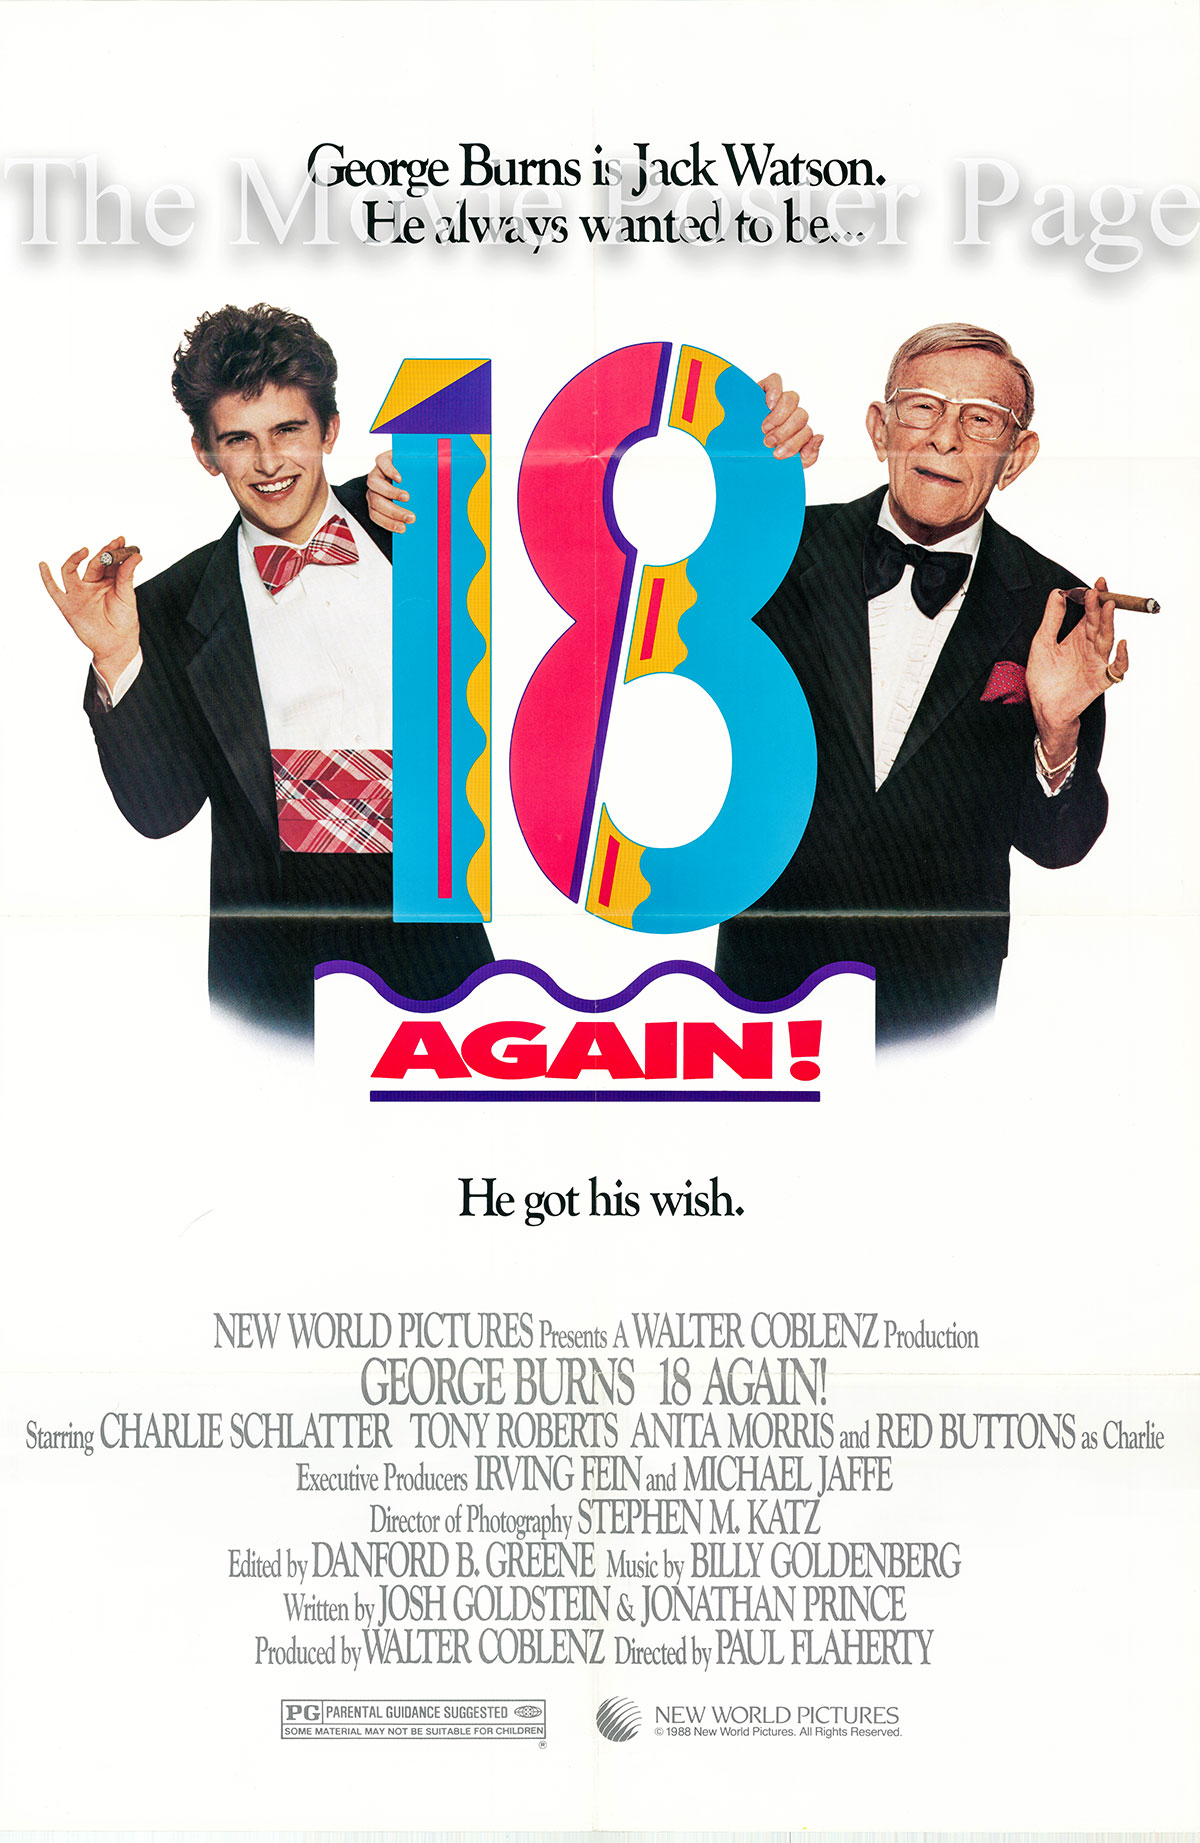 Pictured is a US one-sheet poster for the 1988 Paul Flaherty film Eighteen Again starring George Burns as Jack Watson.